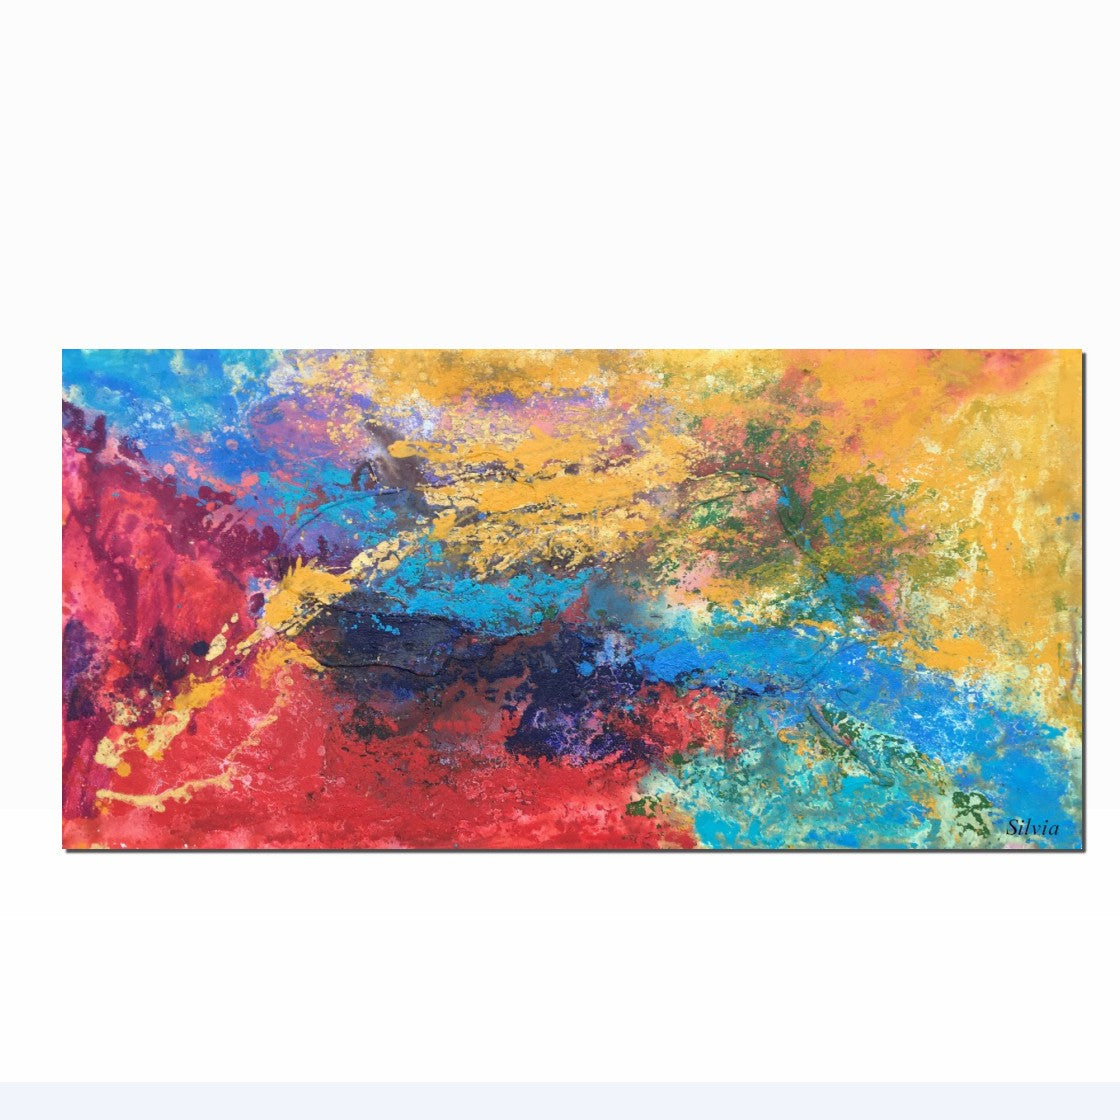 Abstract Painting, Oil Painting, Canvas Wall Art, Modern Art, Canvas Art, Original Abstract Art, Living Room Art, Large Abstract Painting